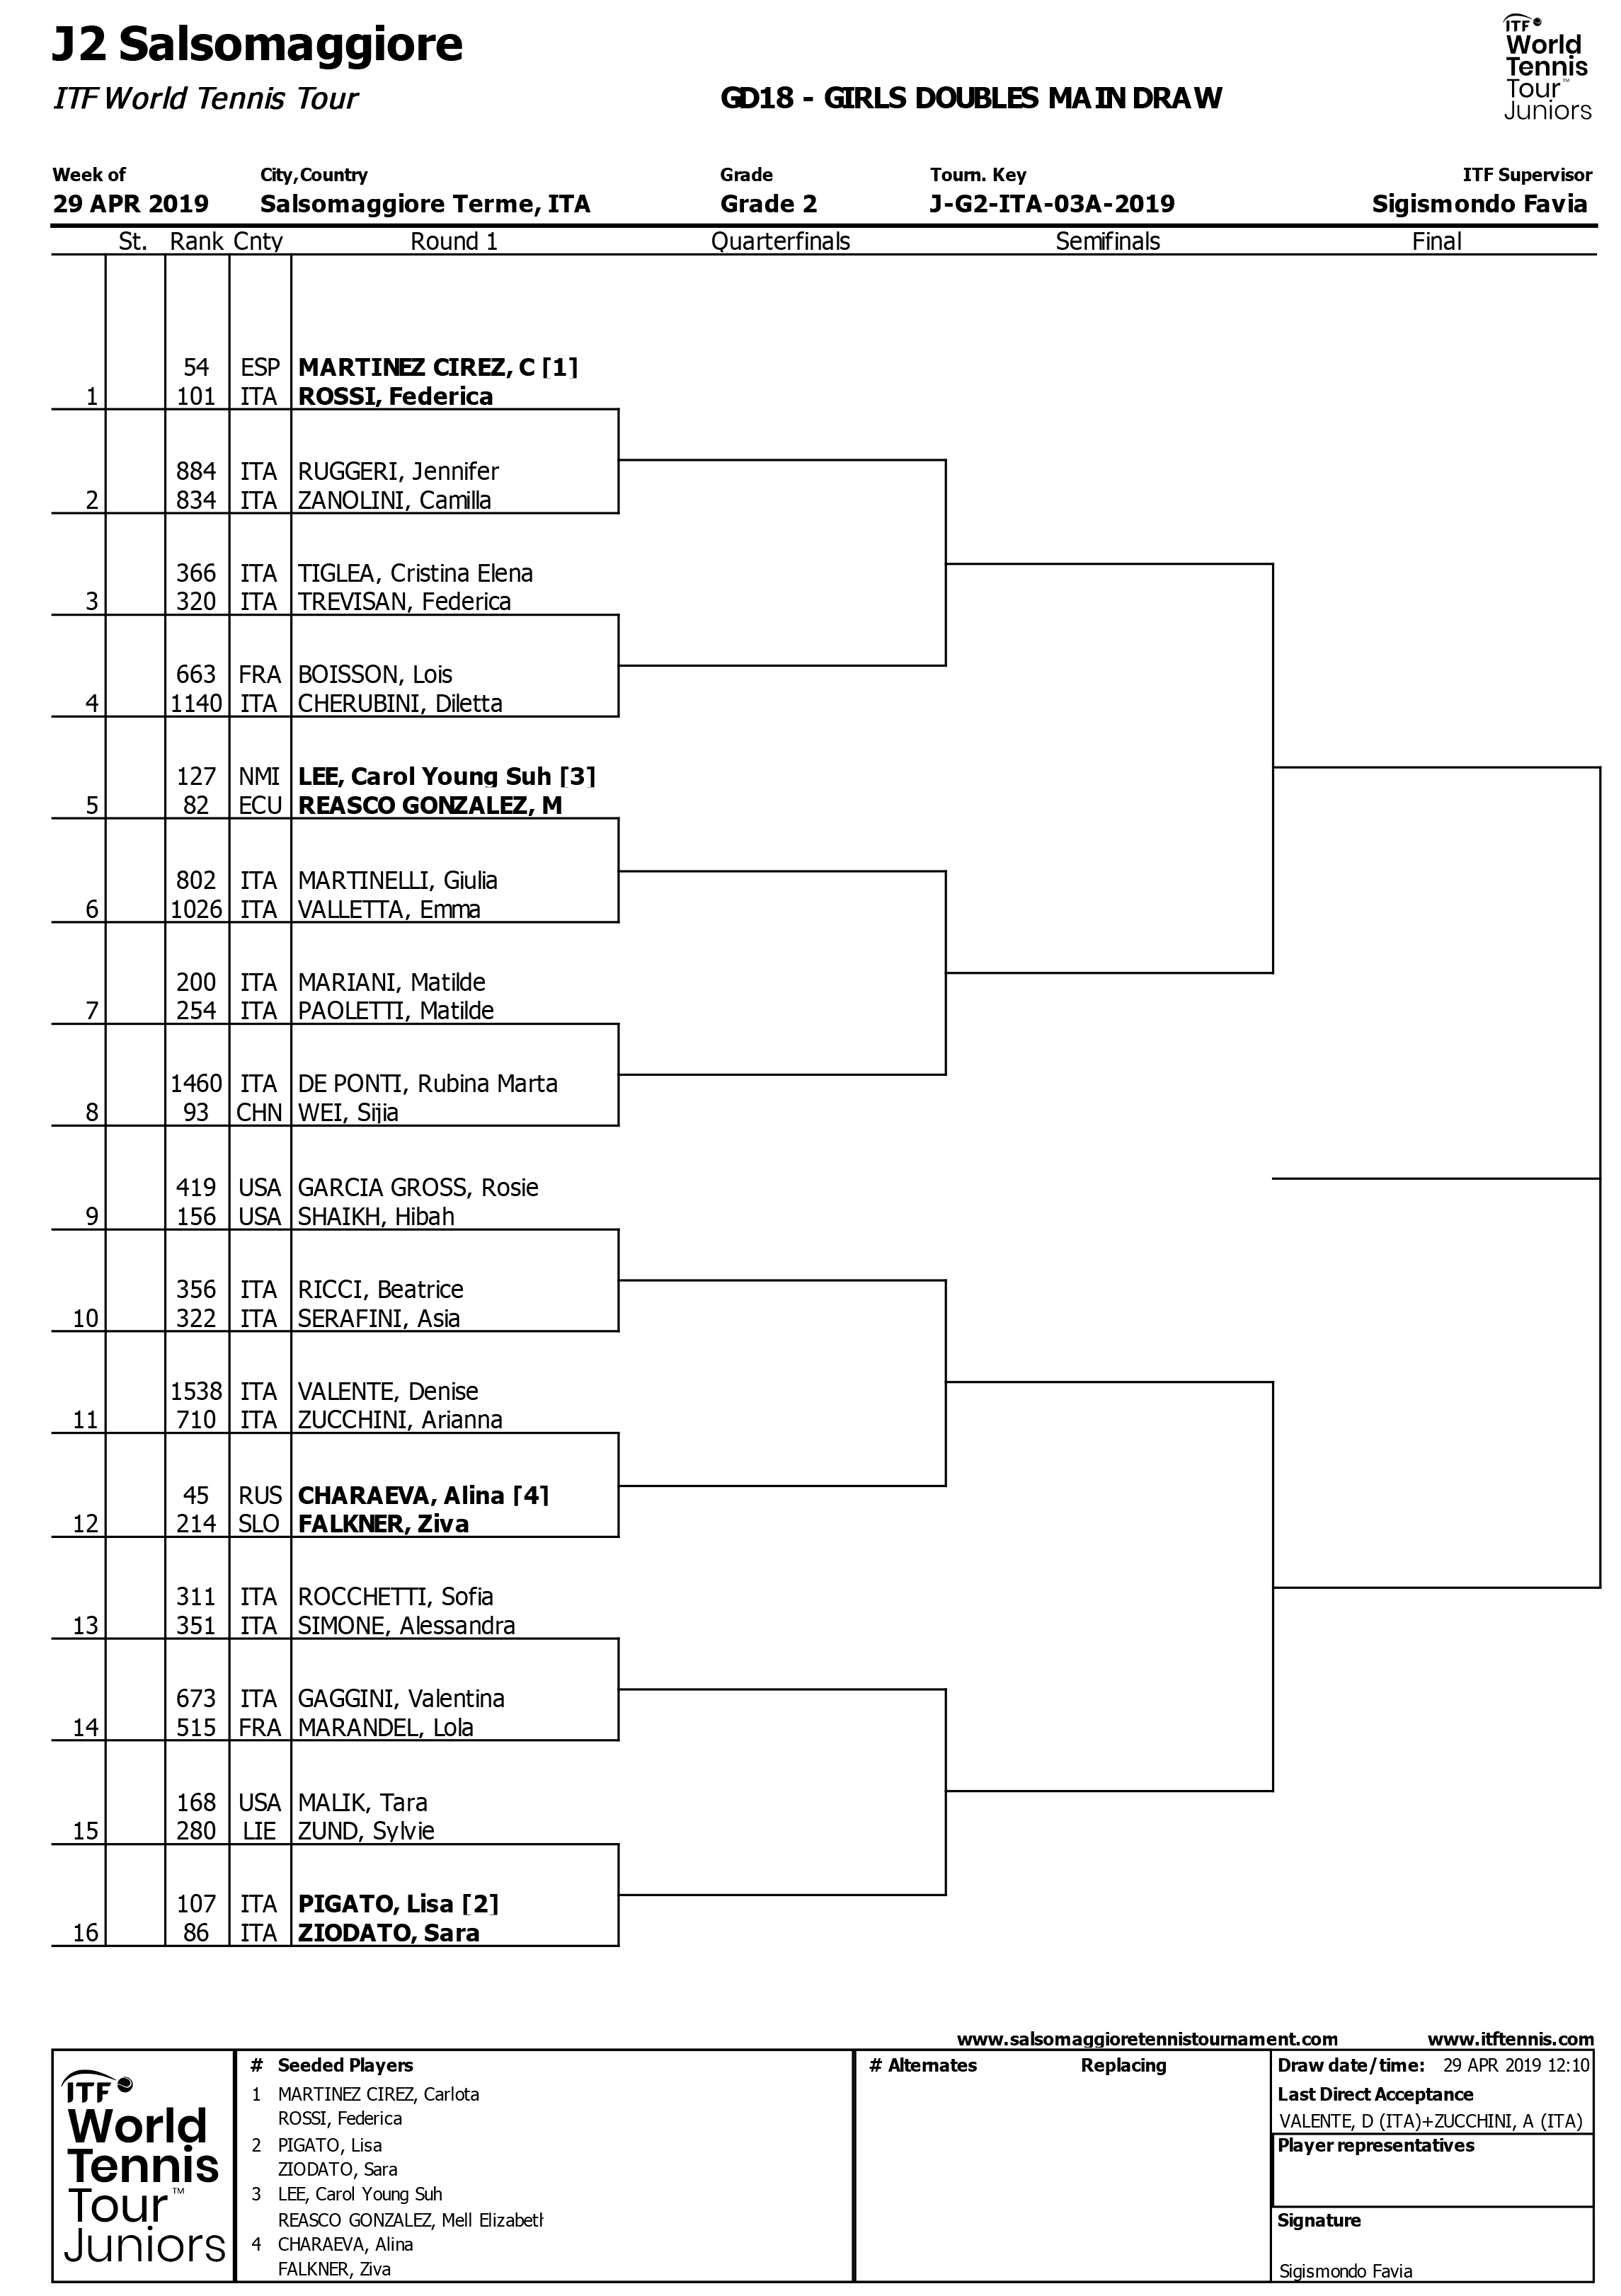 GIRLS DOUBLES MAIN DRAW